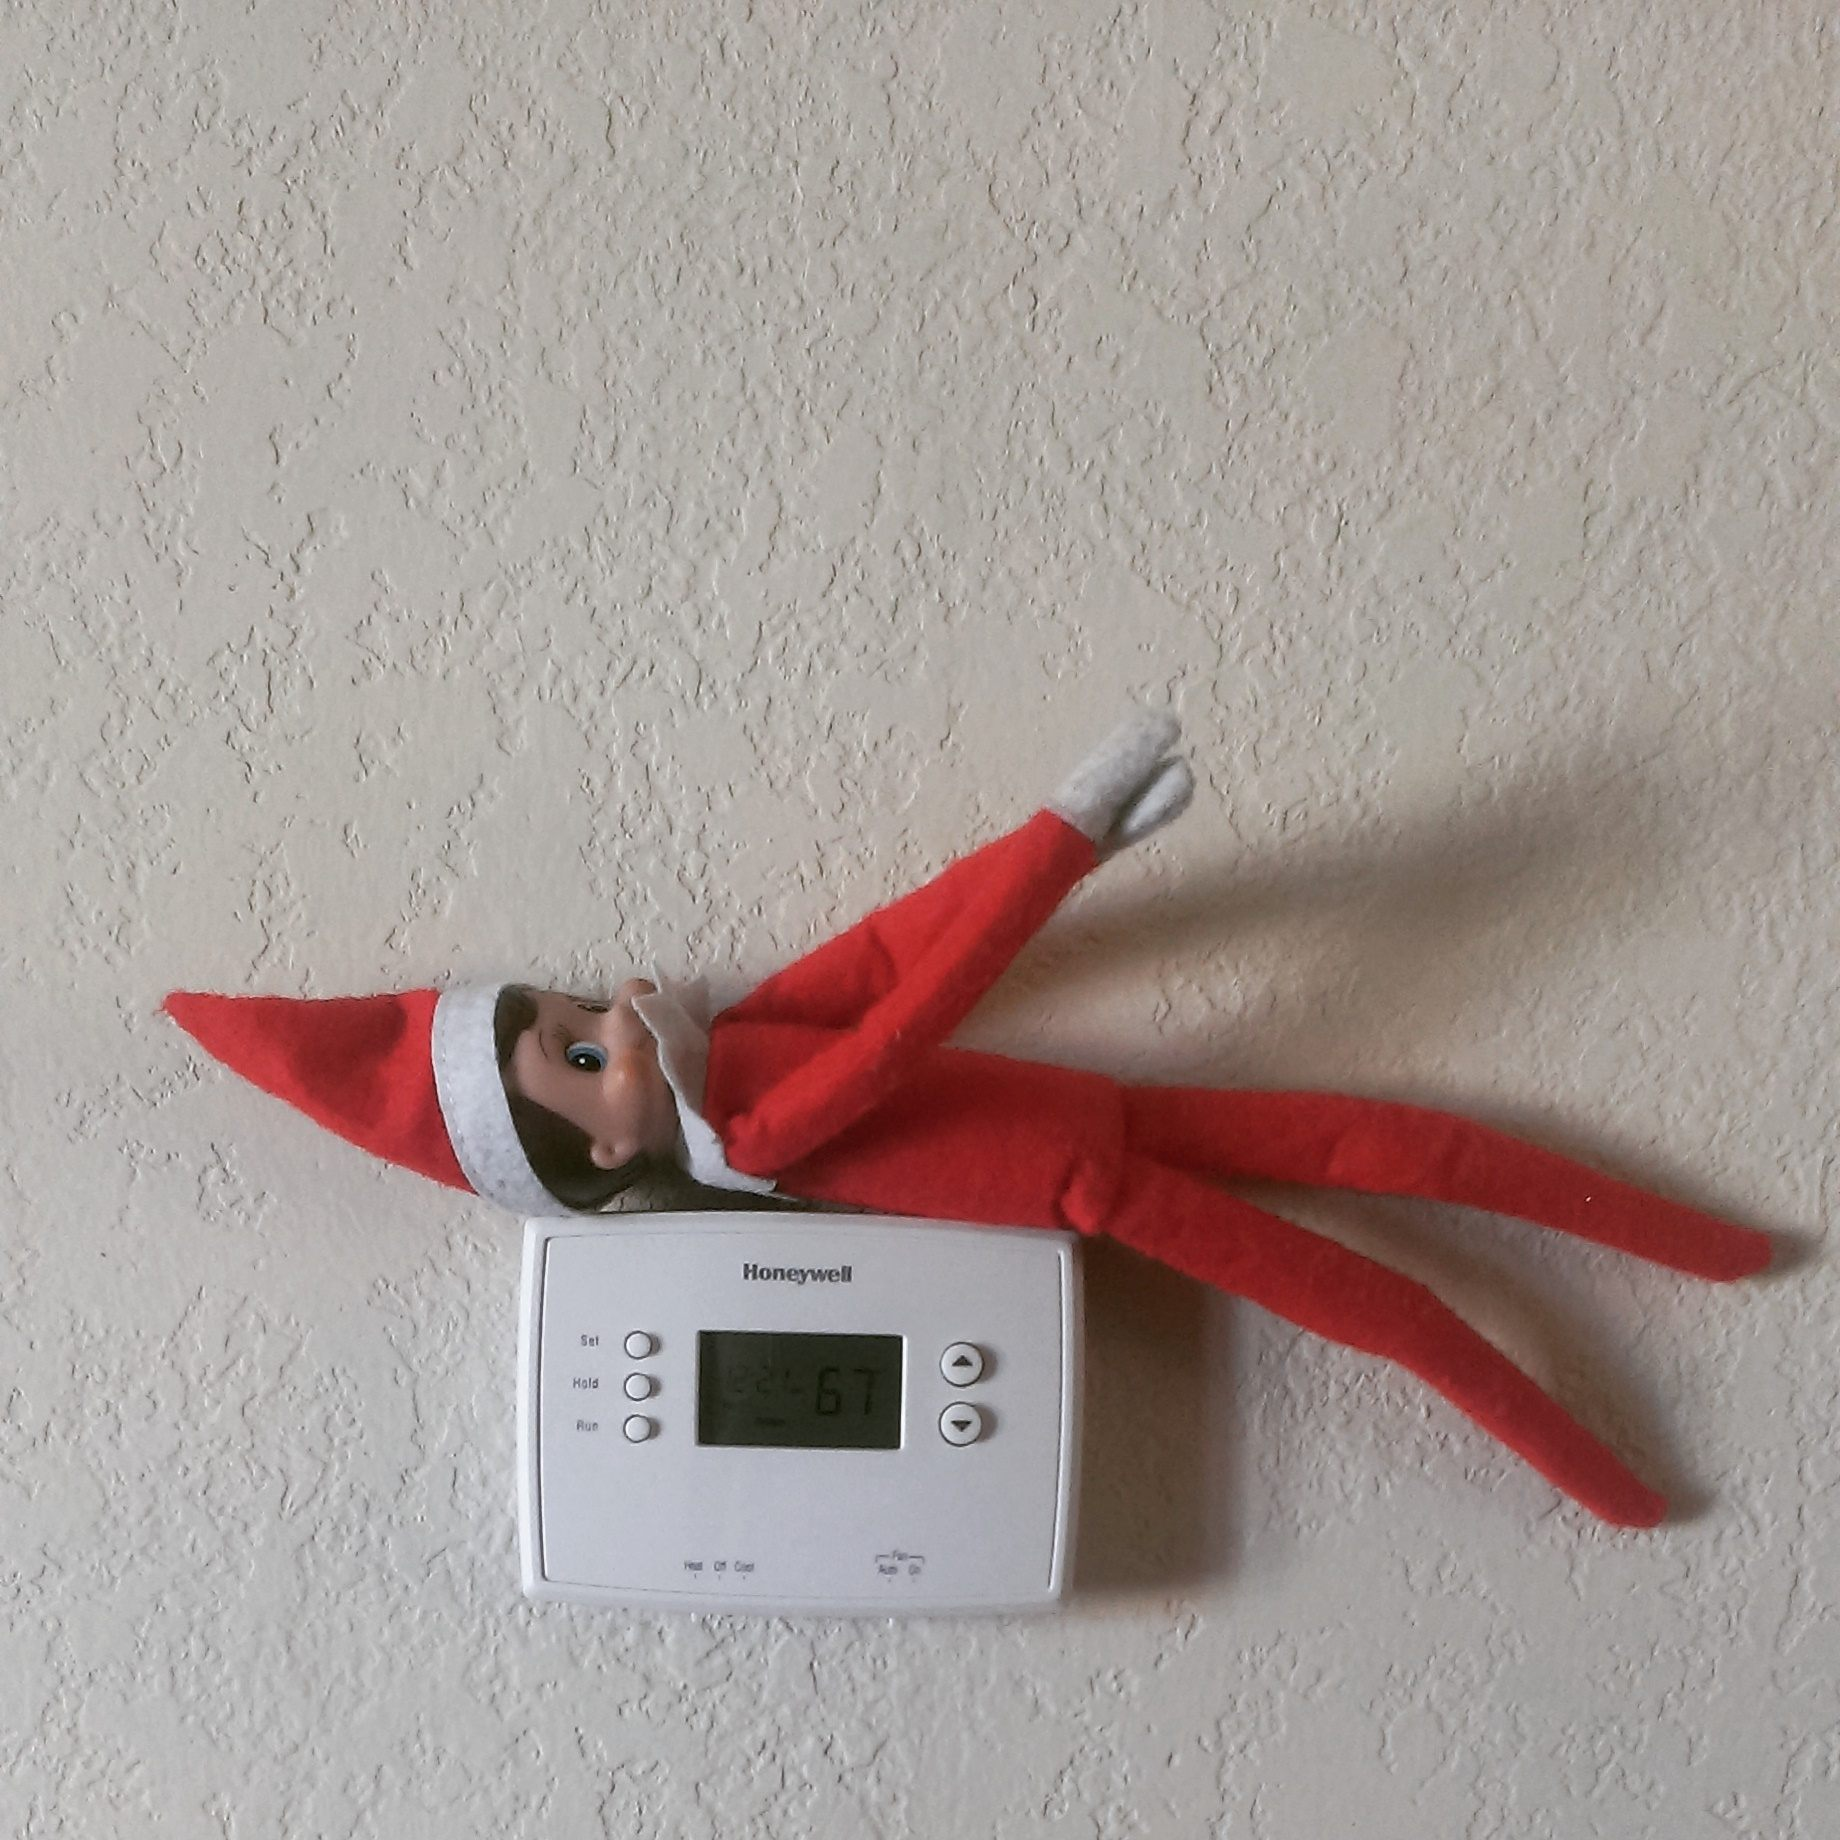 What should you do if your kid catches you hiding the Elf on